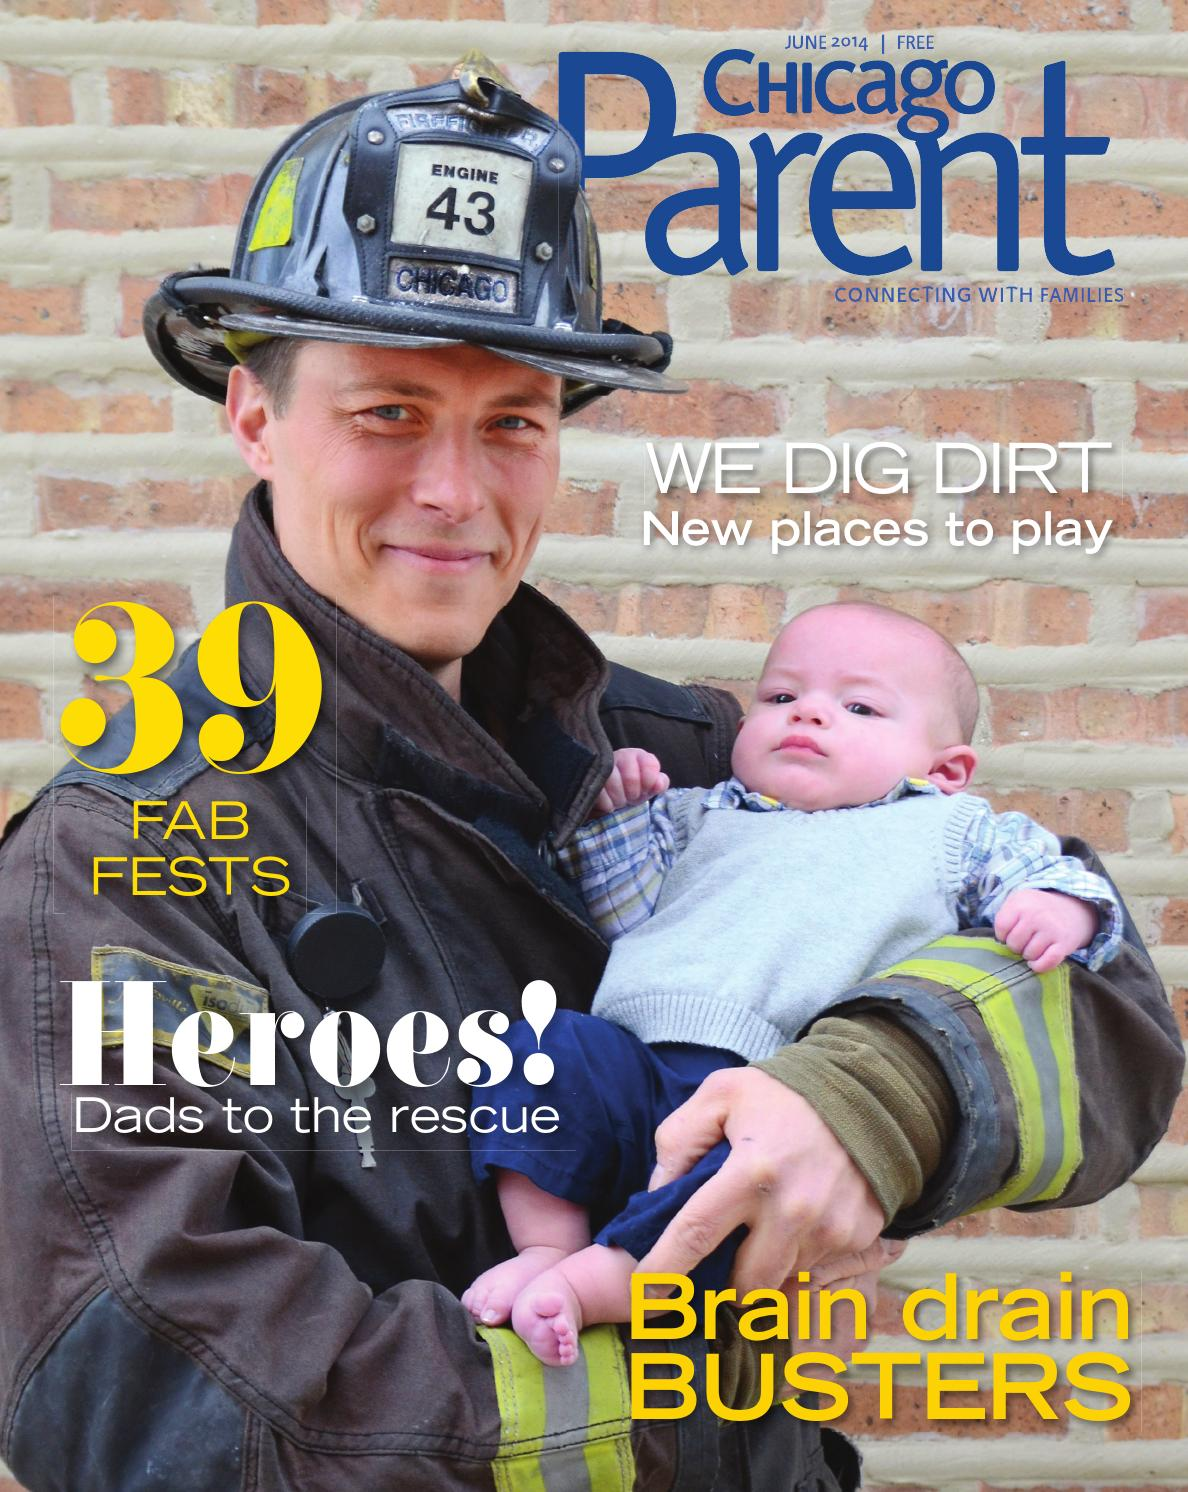 a639fcf4378 Chicago Parent June 2014 by Chicago Parent - issuu